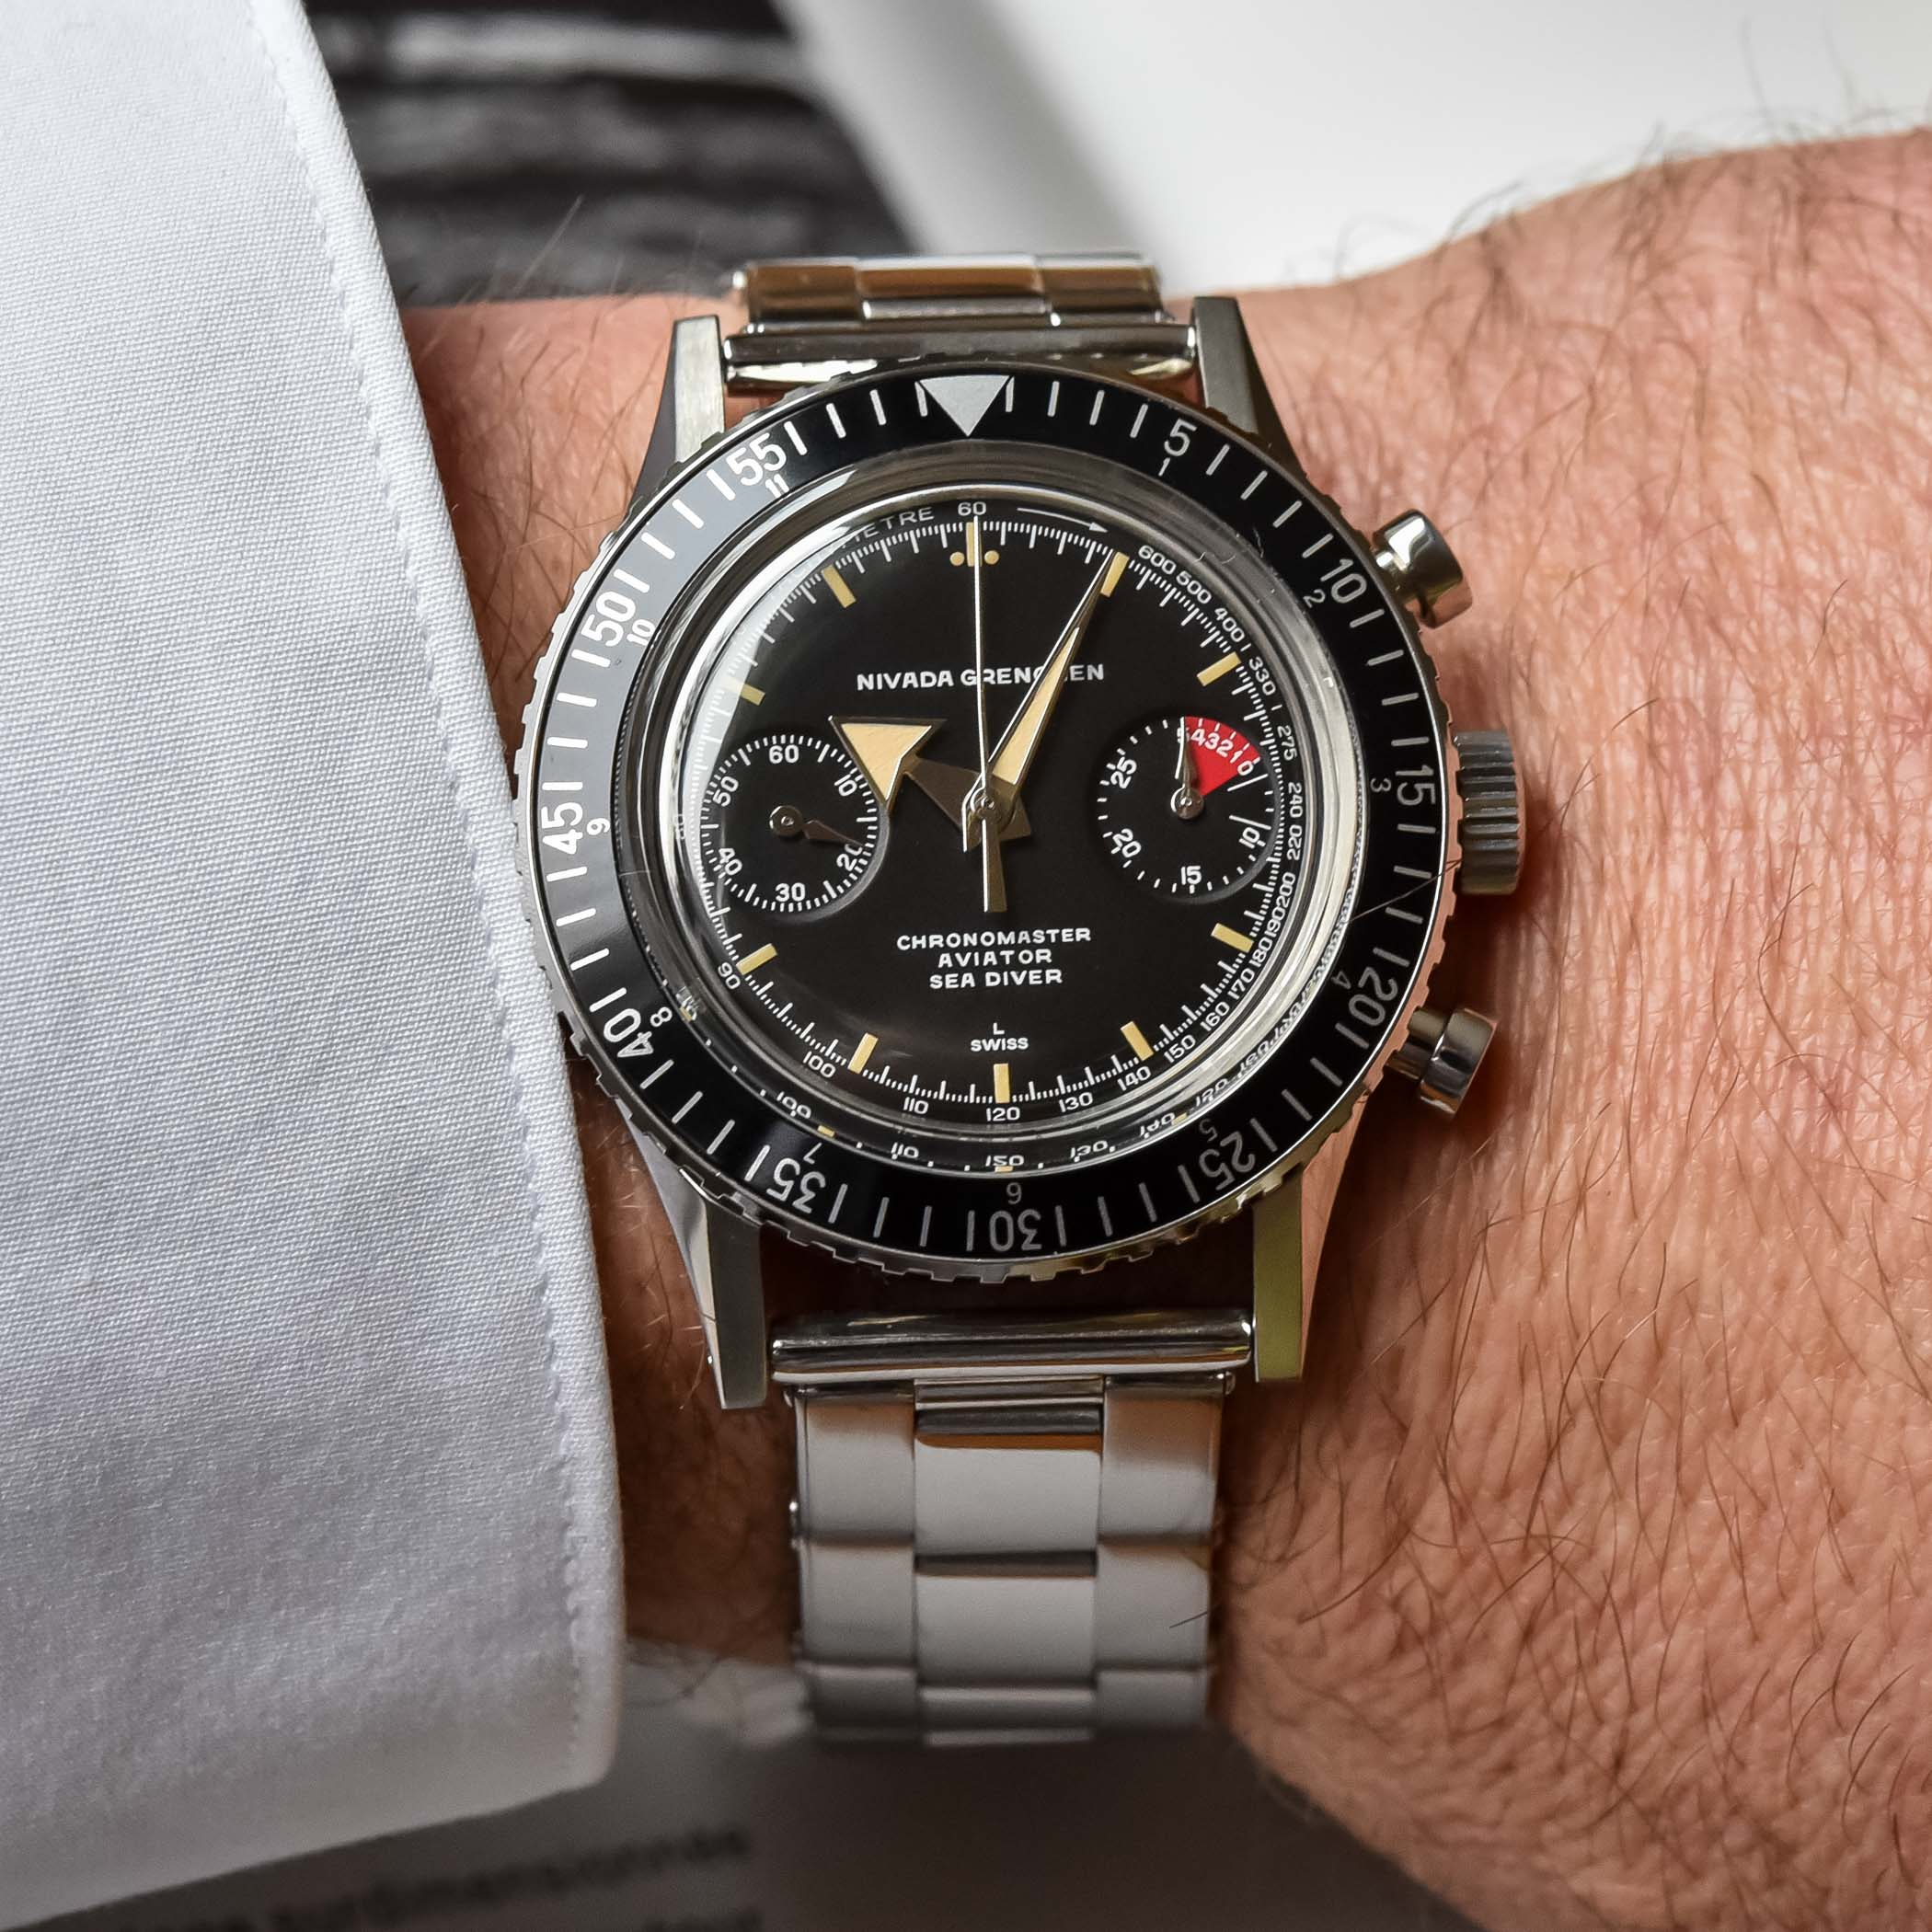 Nivada Grenchen Chronomaster Aviator Sea Diver Re-edition 2021